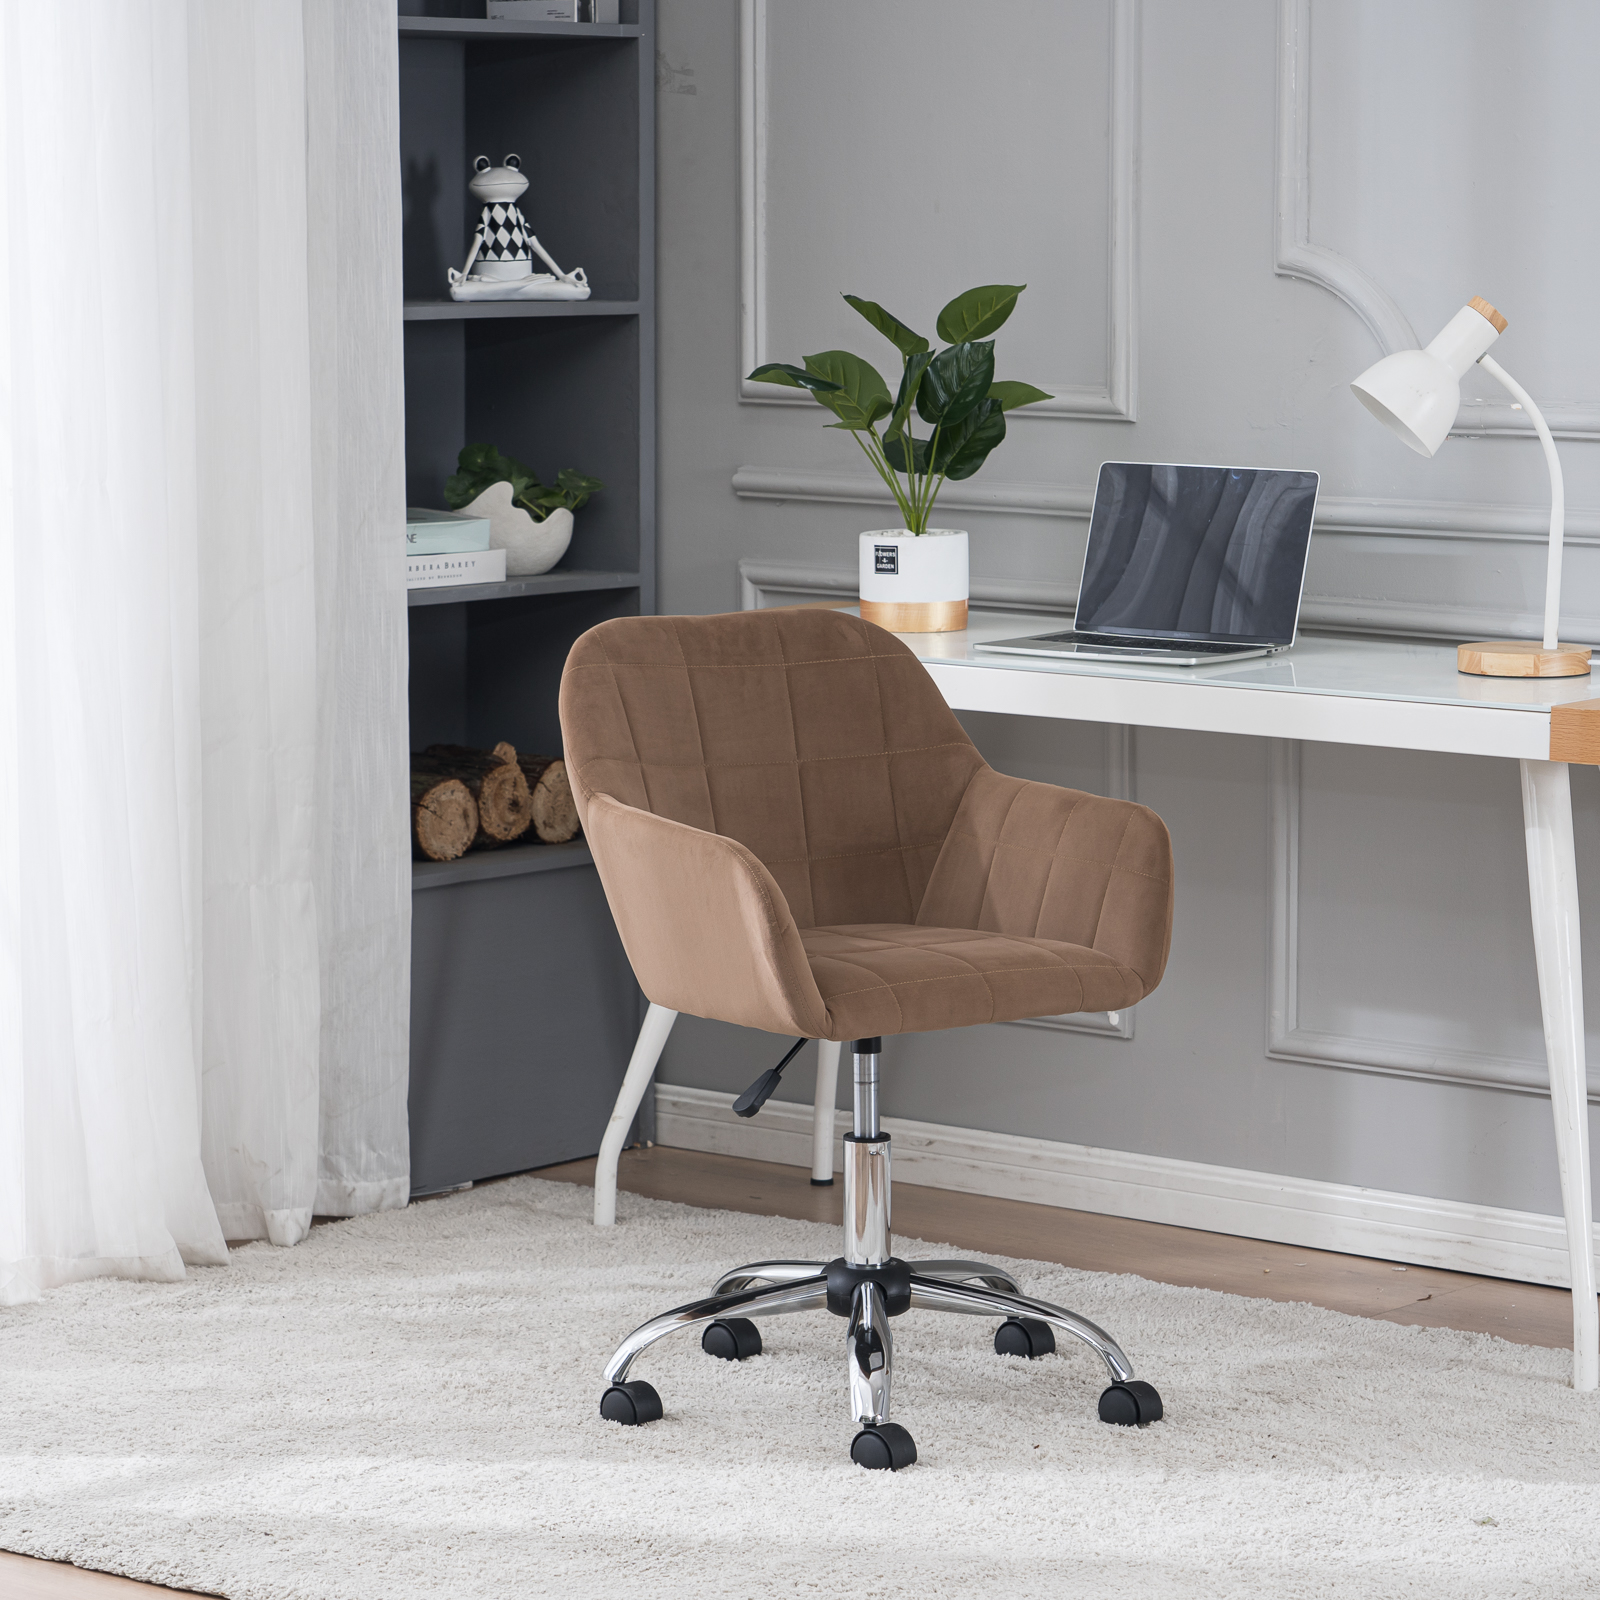 [US Direct] Modern New Pink Velvet Desk Chair With Chorme Metal Base Ergonomic Computer Task Chair with Arms Adjustable Height Swivel Home office chair